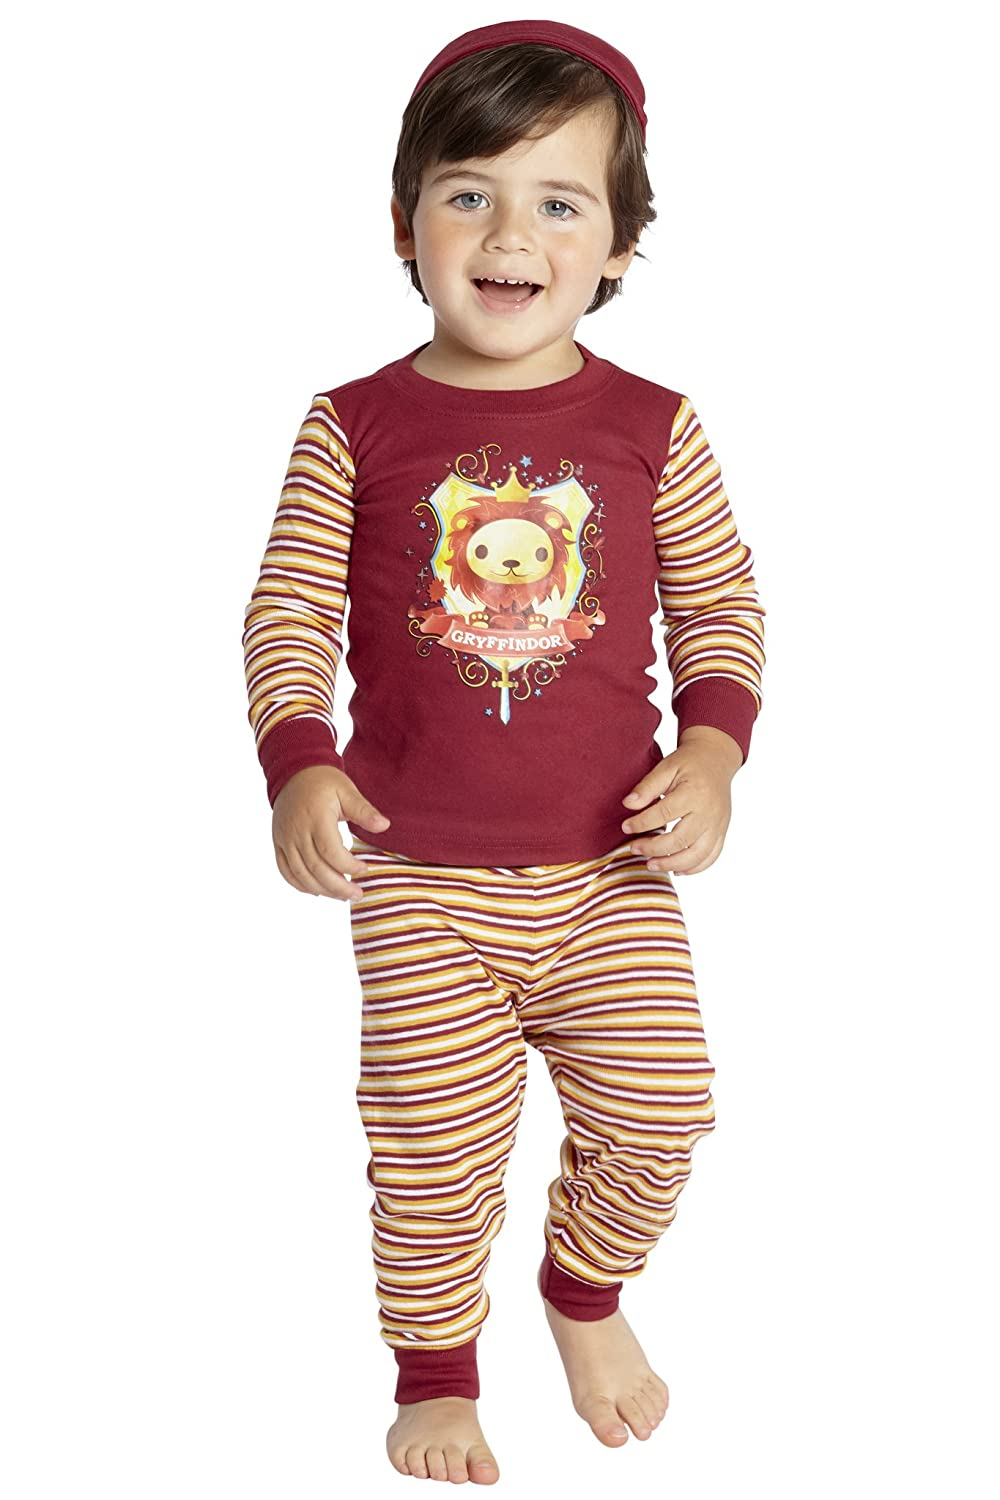 HARRY POTTER Baby Pajamas 'House Crest Cartoon' Cotton Infant Shower Gift Set Intimo